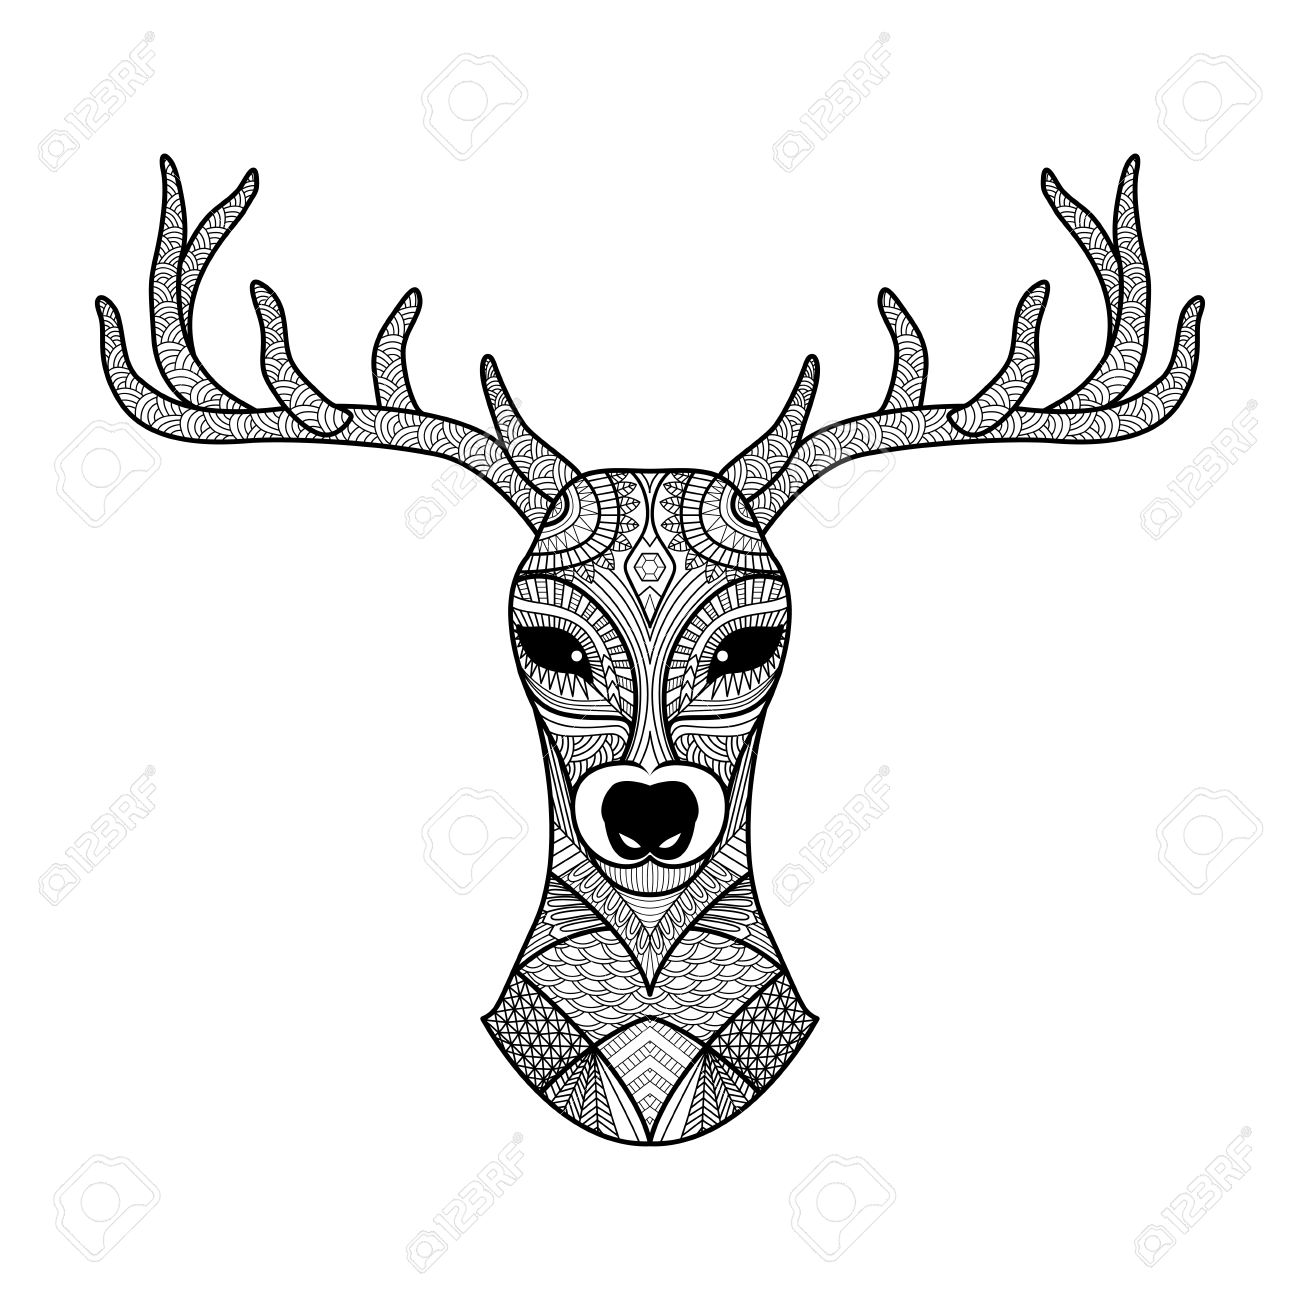 detailed zentangle deer for coloring page tattoo shirt design